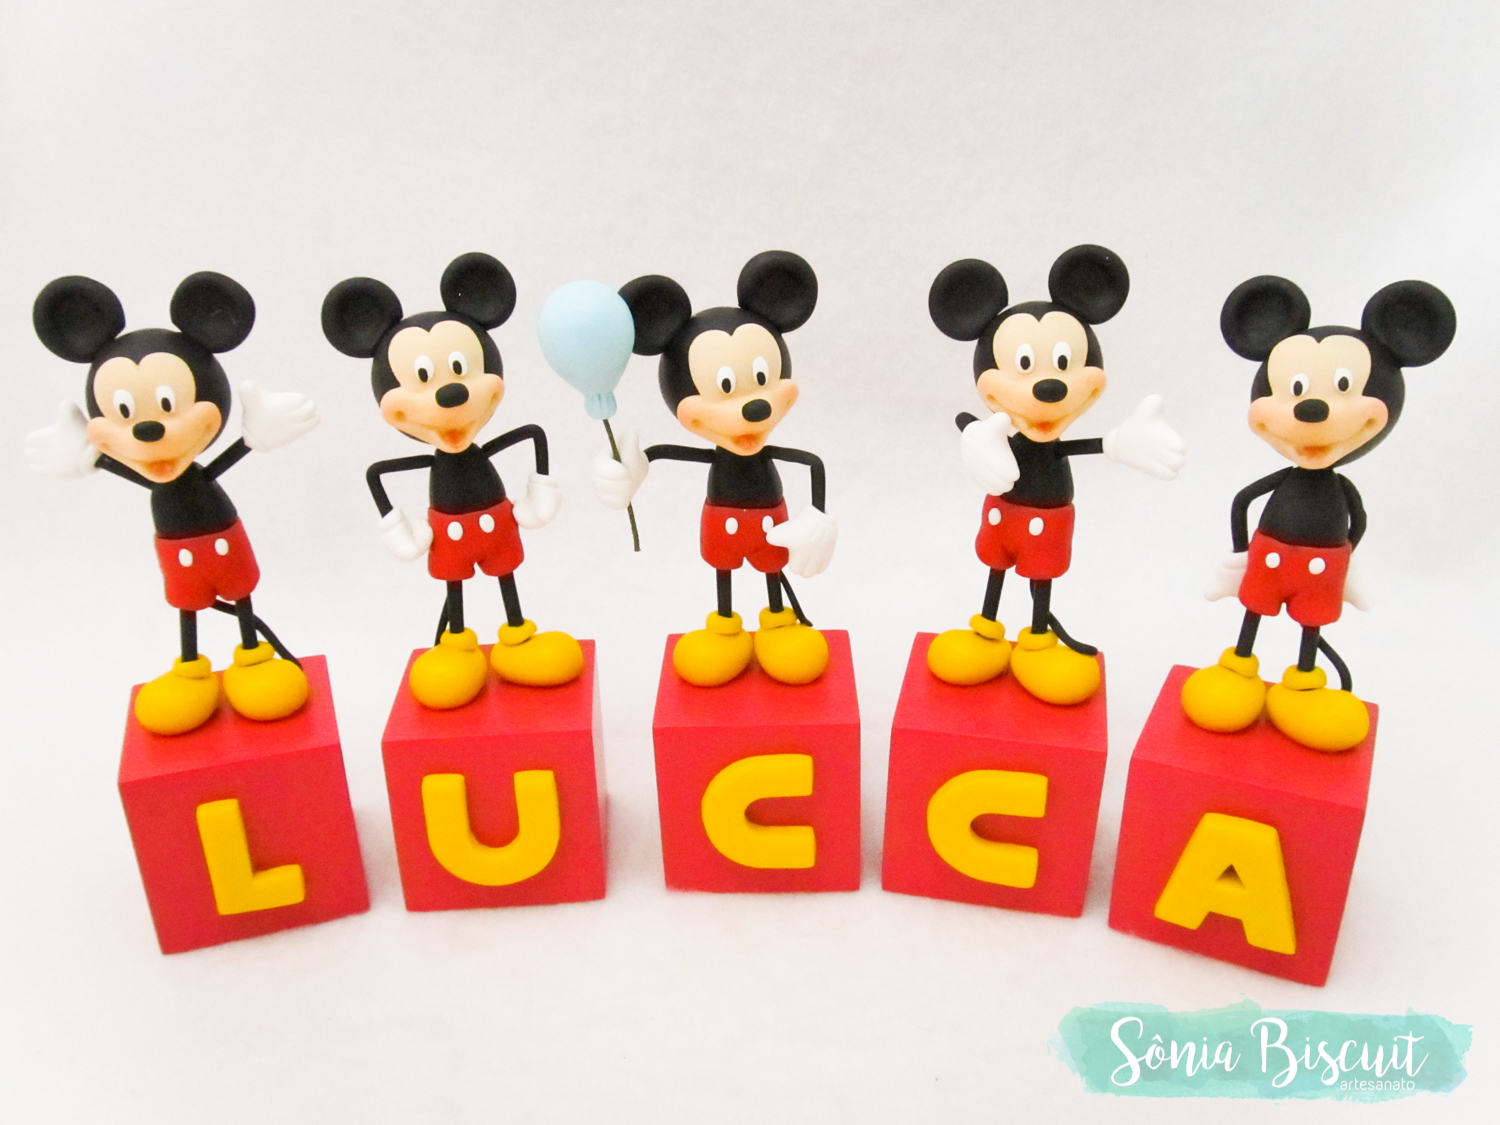 Cubos, Cubos Decorativos, Biscuit, Mickey, Sonia Biscuit